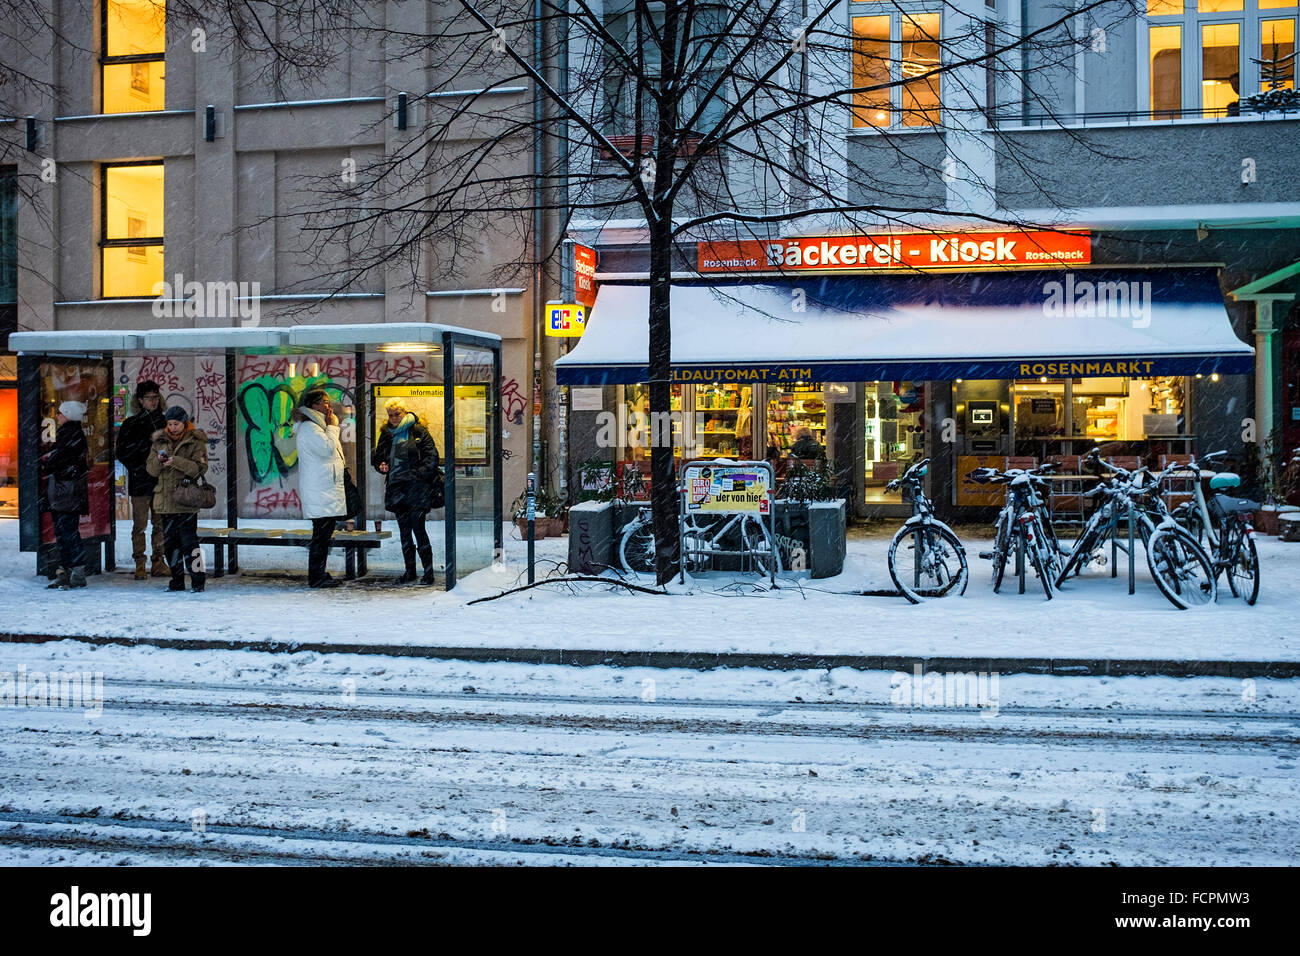 Berlin City Street, Cafe bakery and people sheltering at tram stop shelter during heavy snow fall in Winter - Stock Image